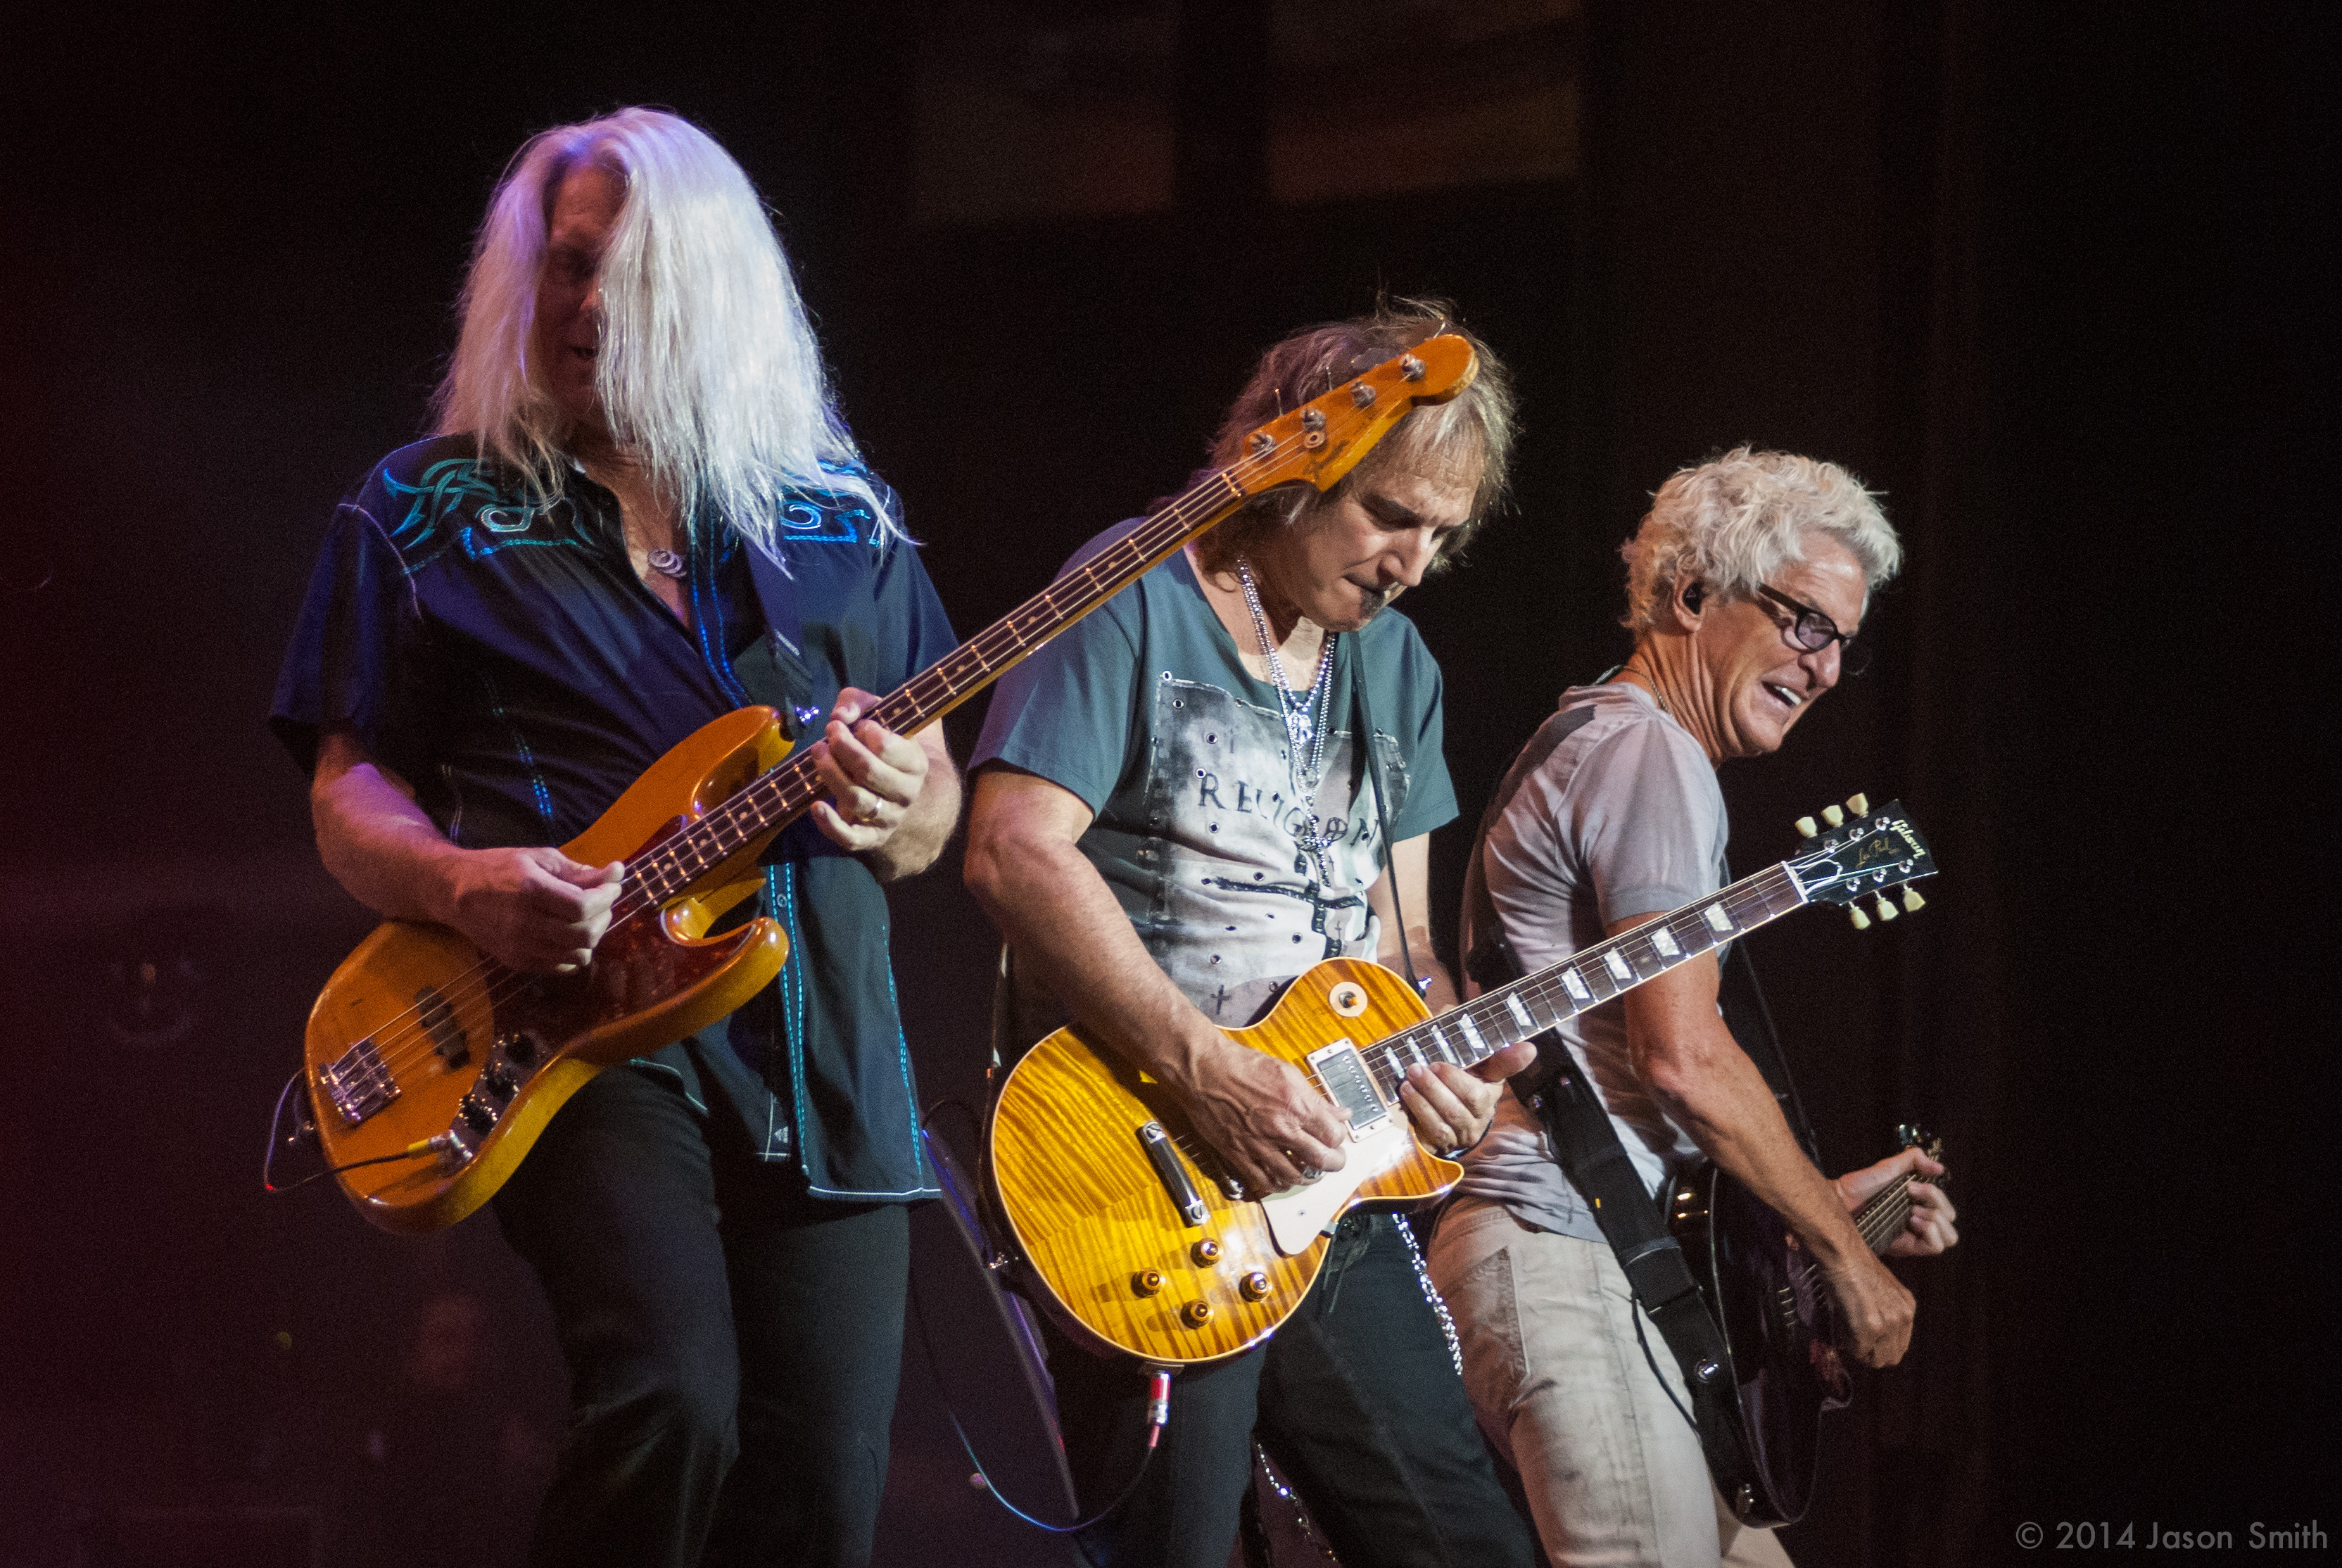 chicago & reo speedwagon - live at red rocks 2014 - hd